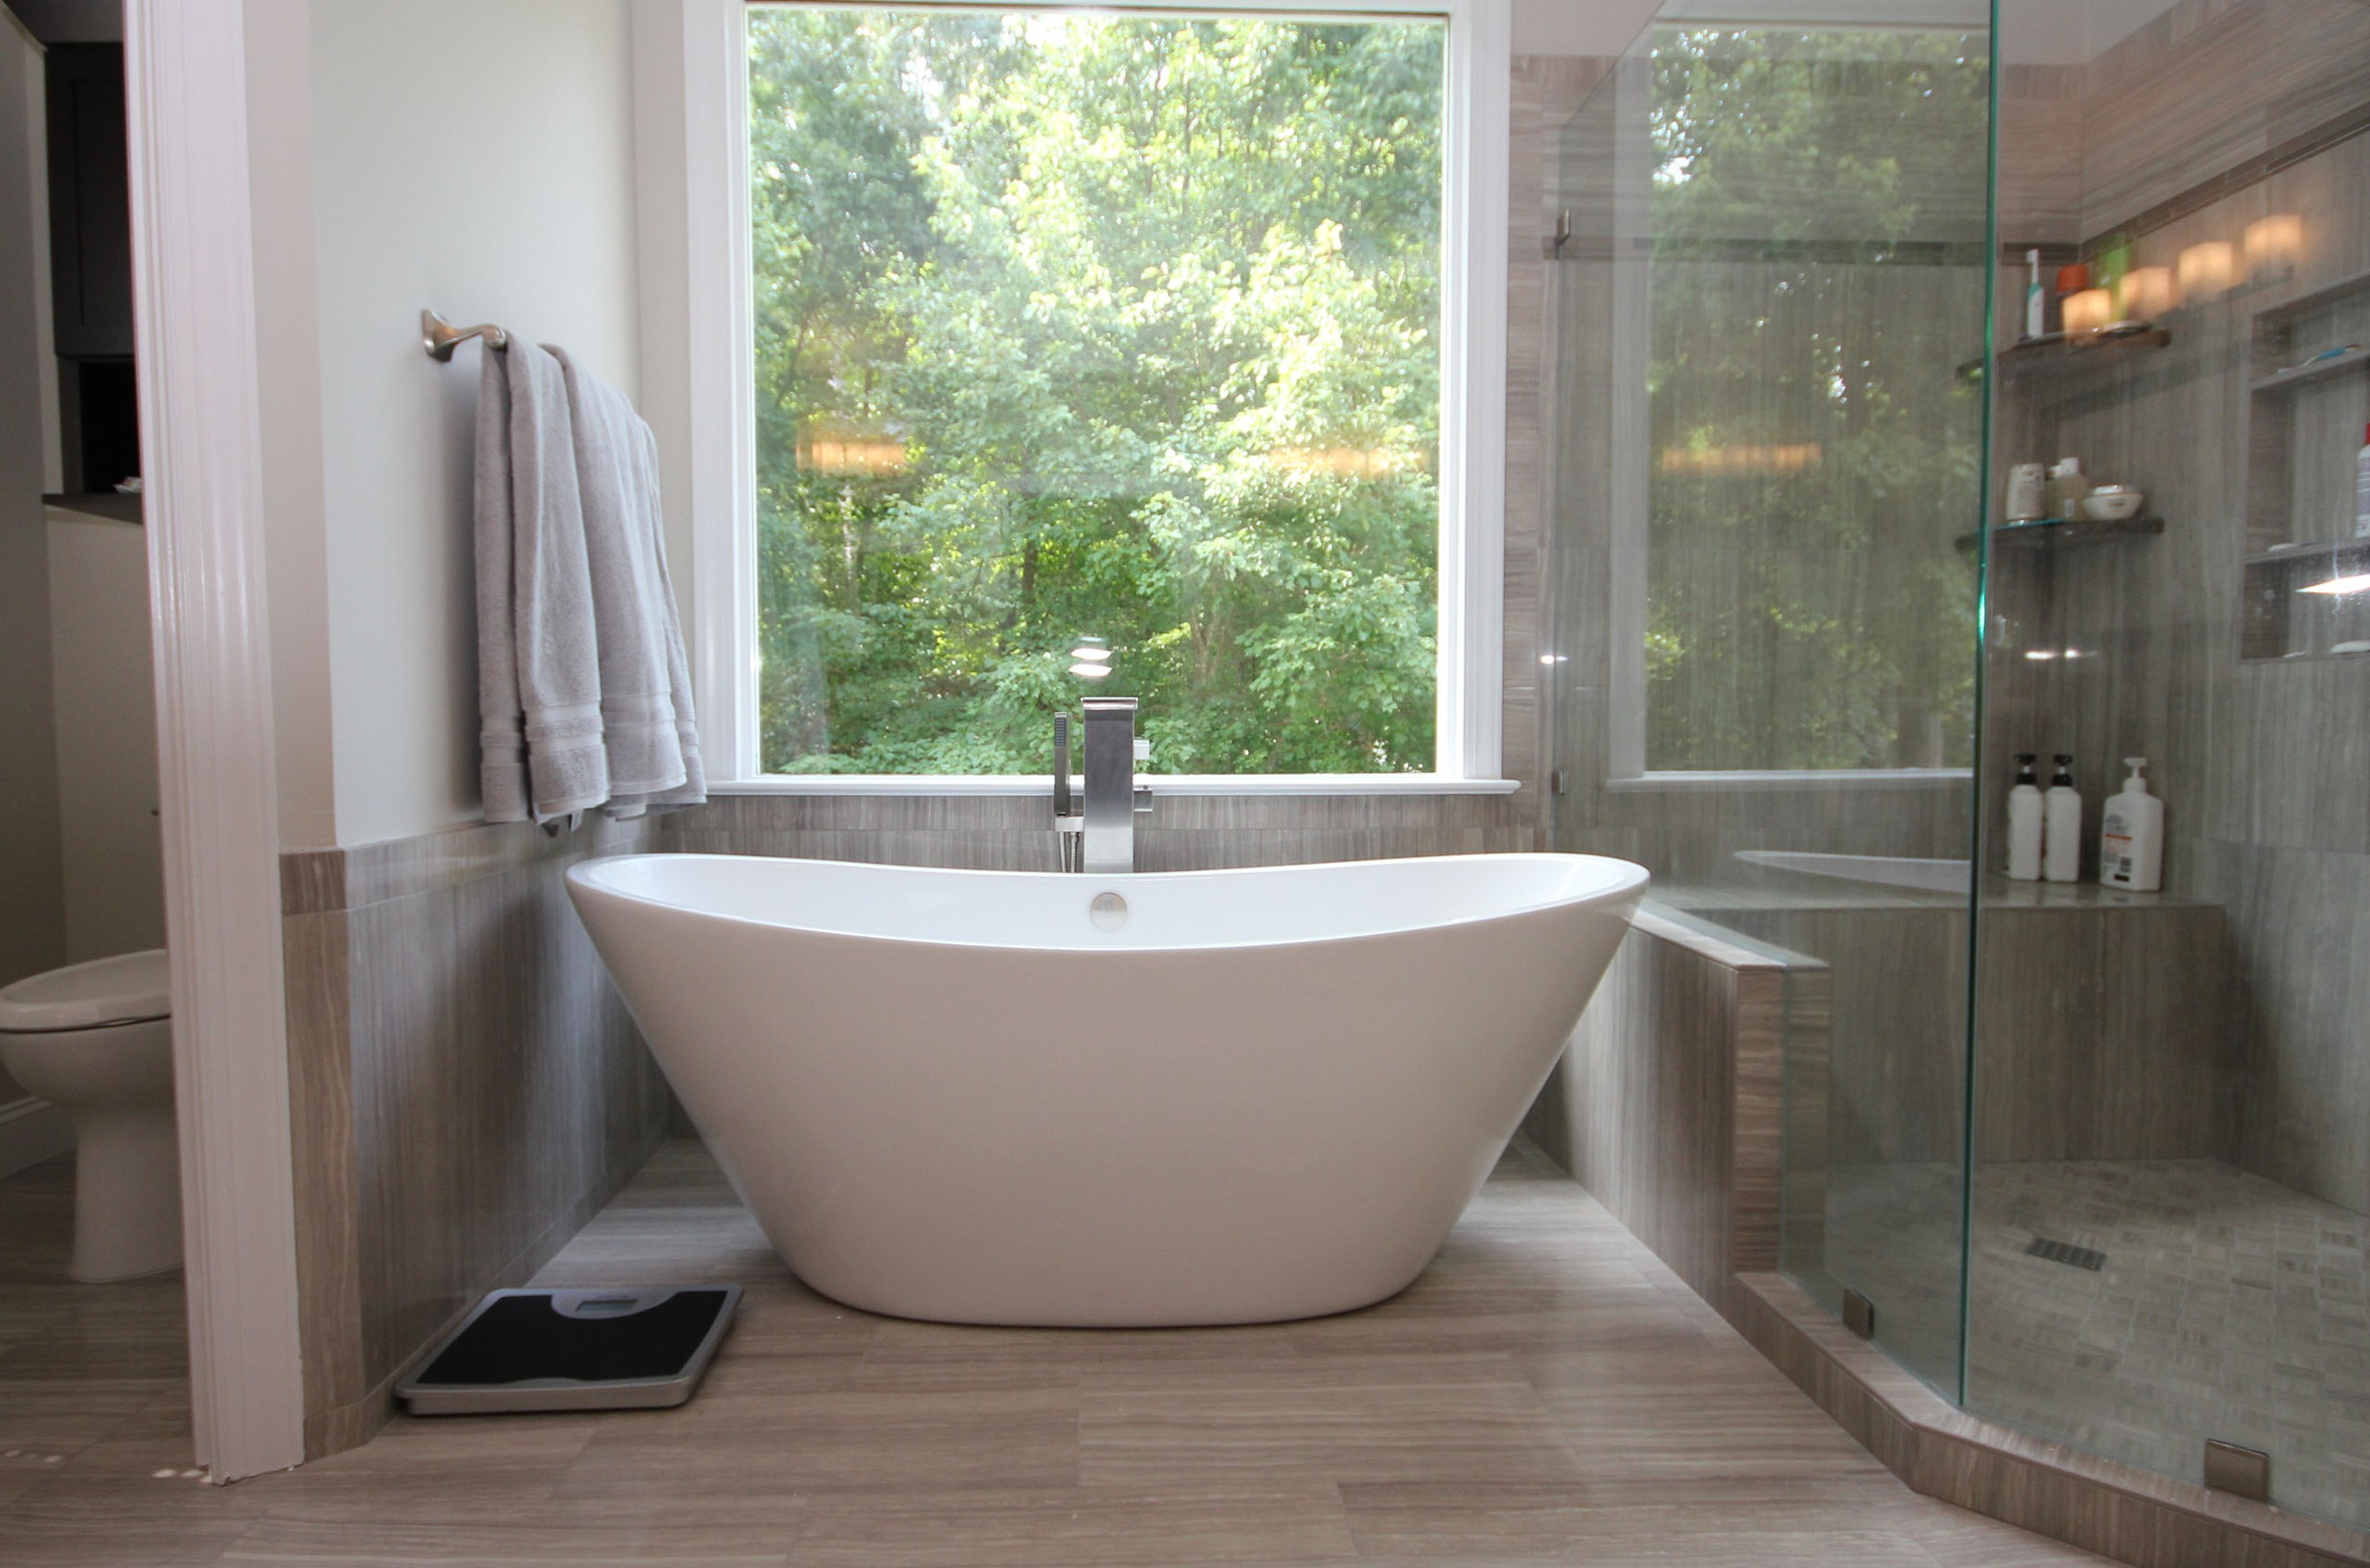 Bathrooms With Freestanding Tubs